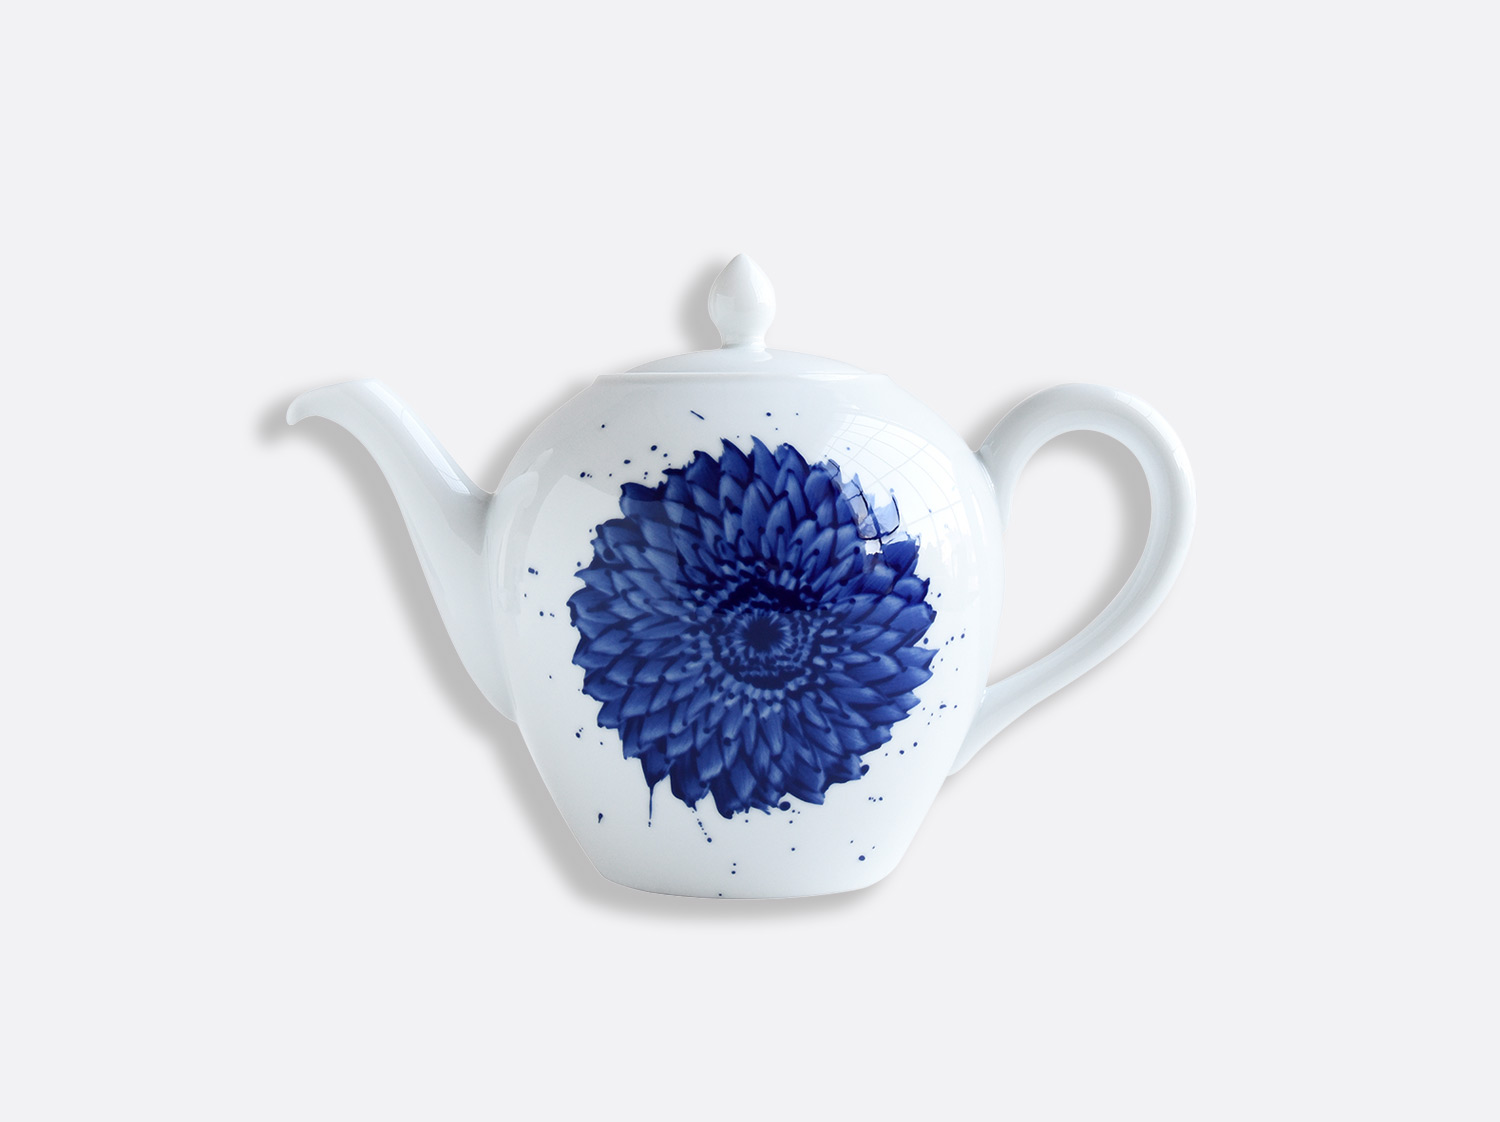 Verseuse en porcelaine de la collection IN BLOOM - Zemer Peled Bernardaud